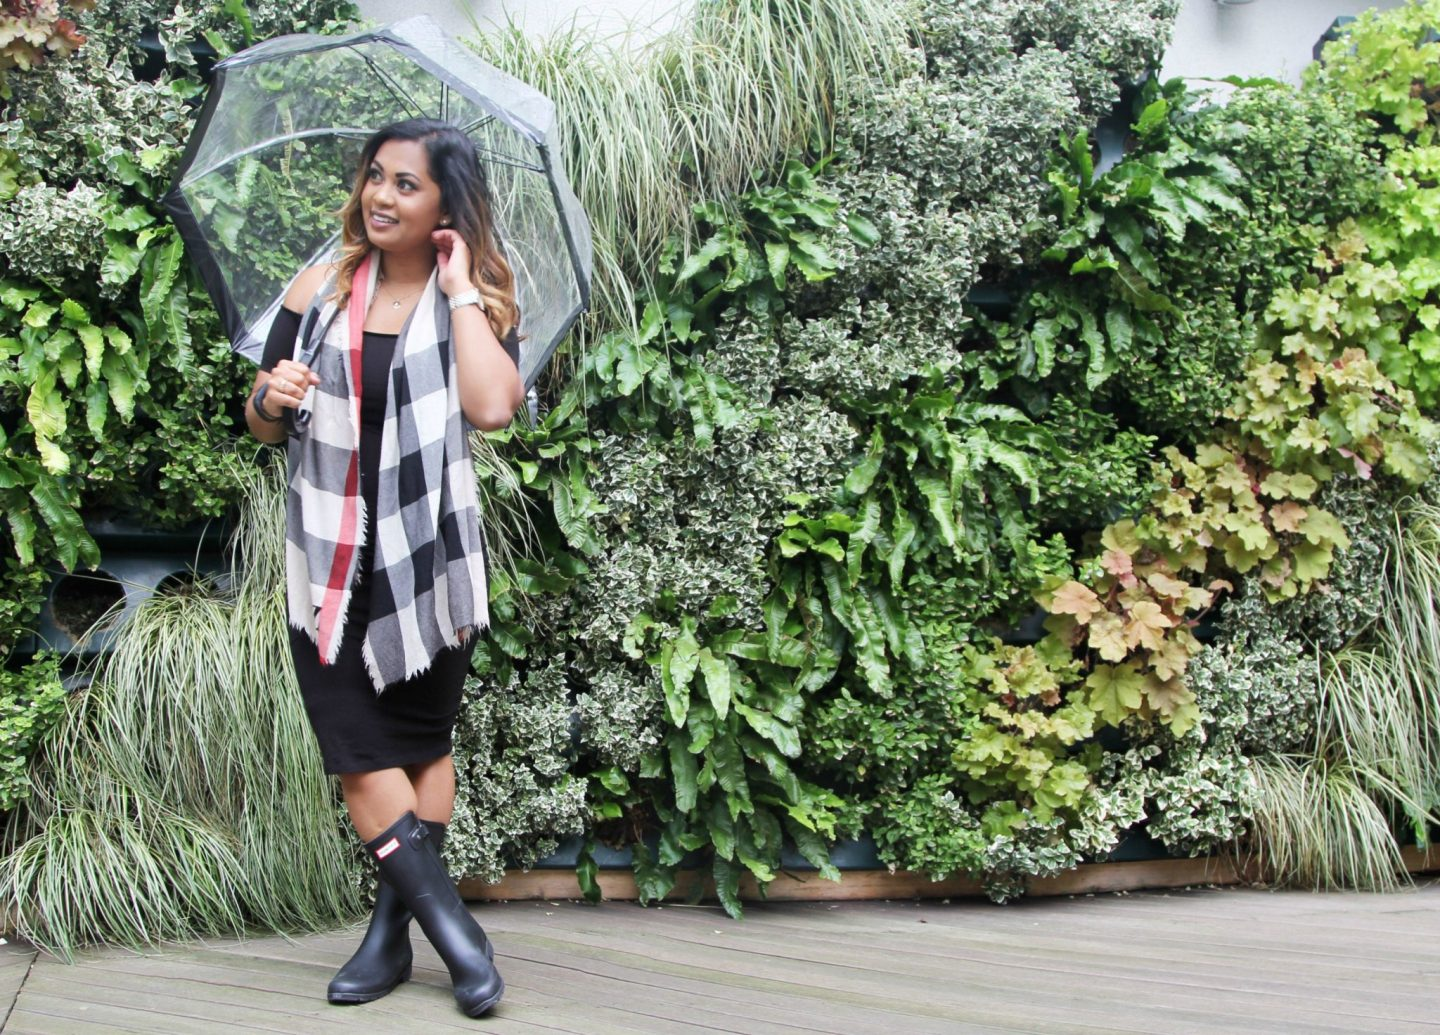 Rainy Day Outfit and Motivation Tips